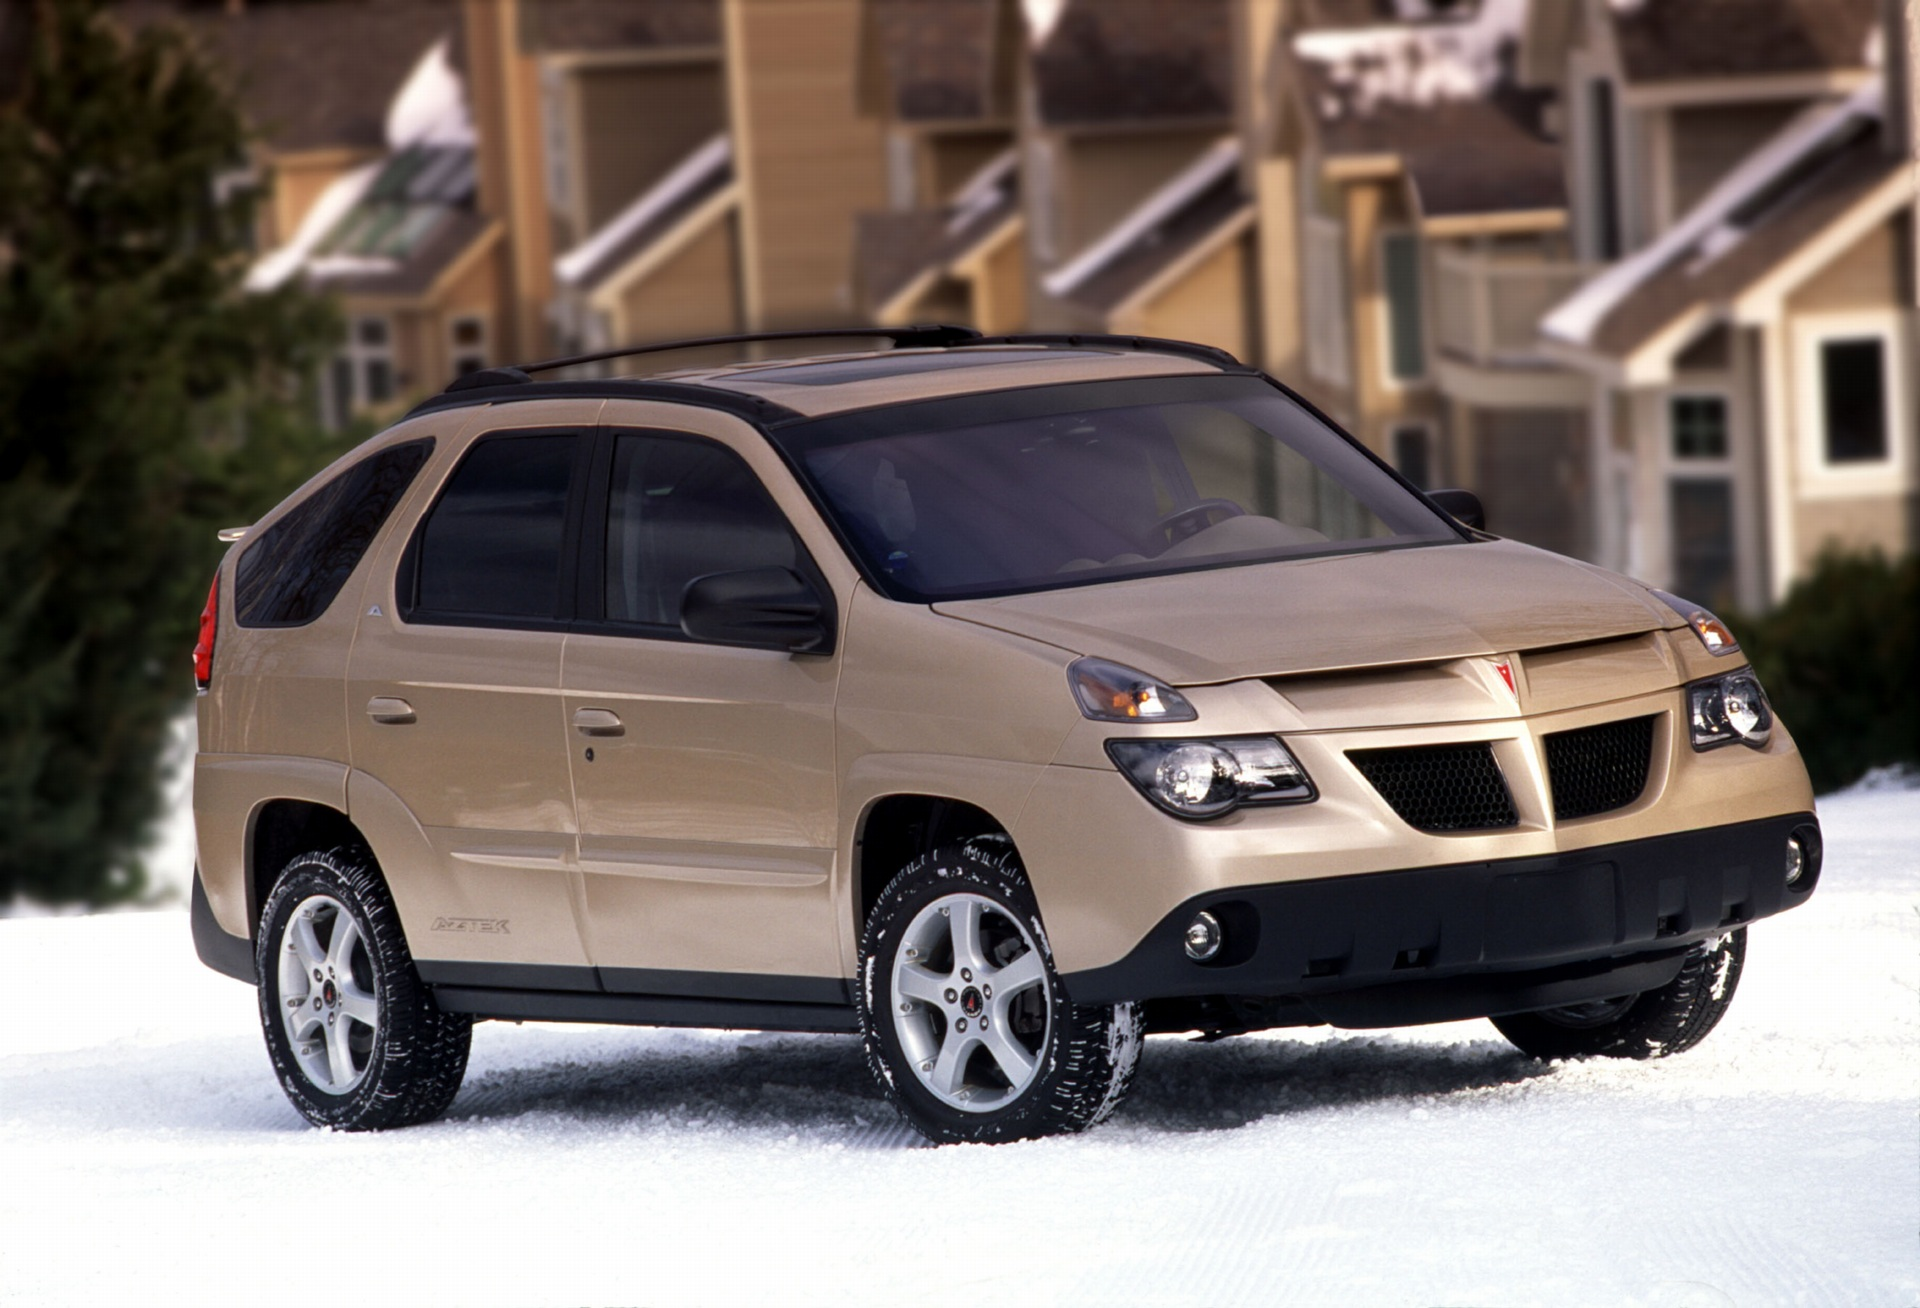 hight resolution of 2003 pontiac aztek history pictures value auction sales research and news